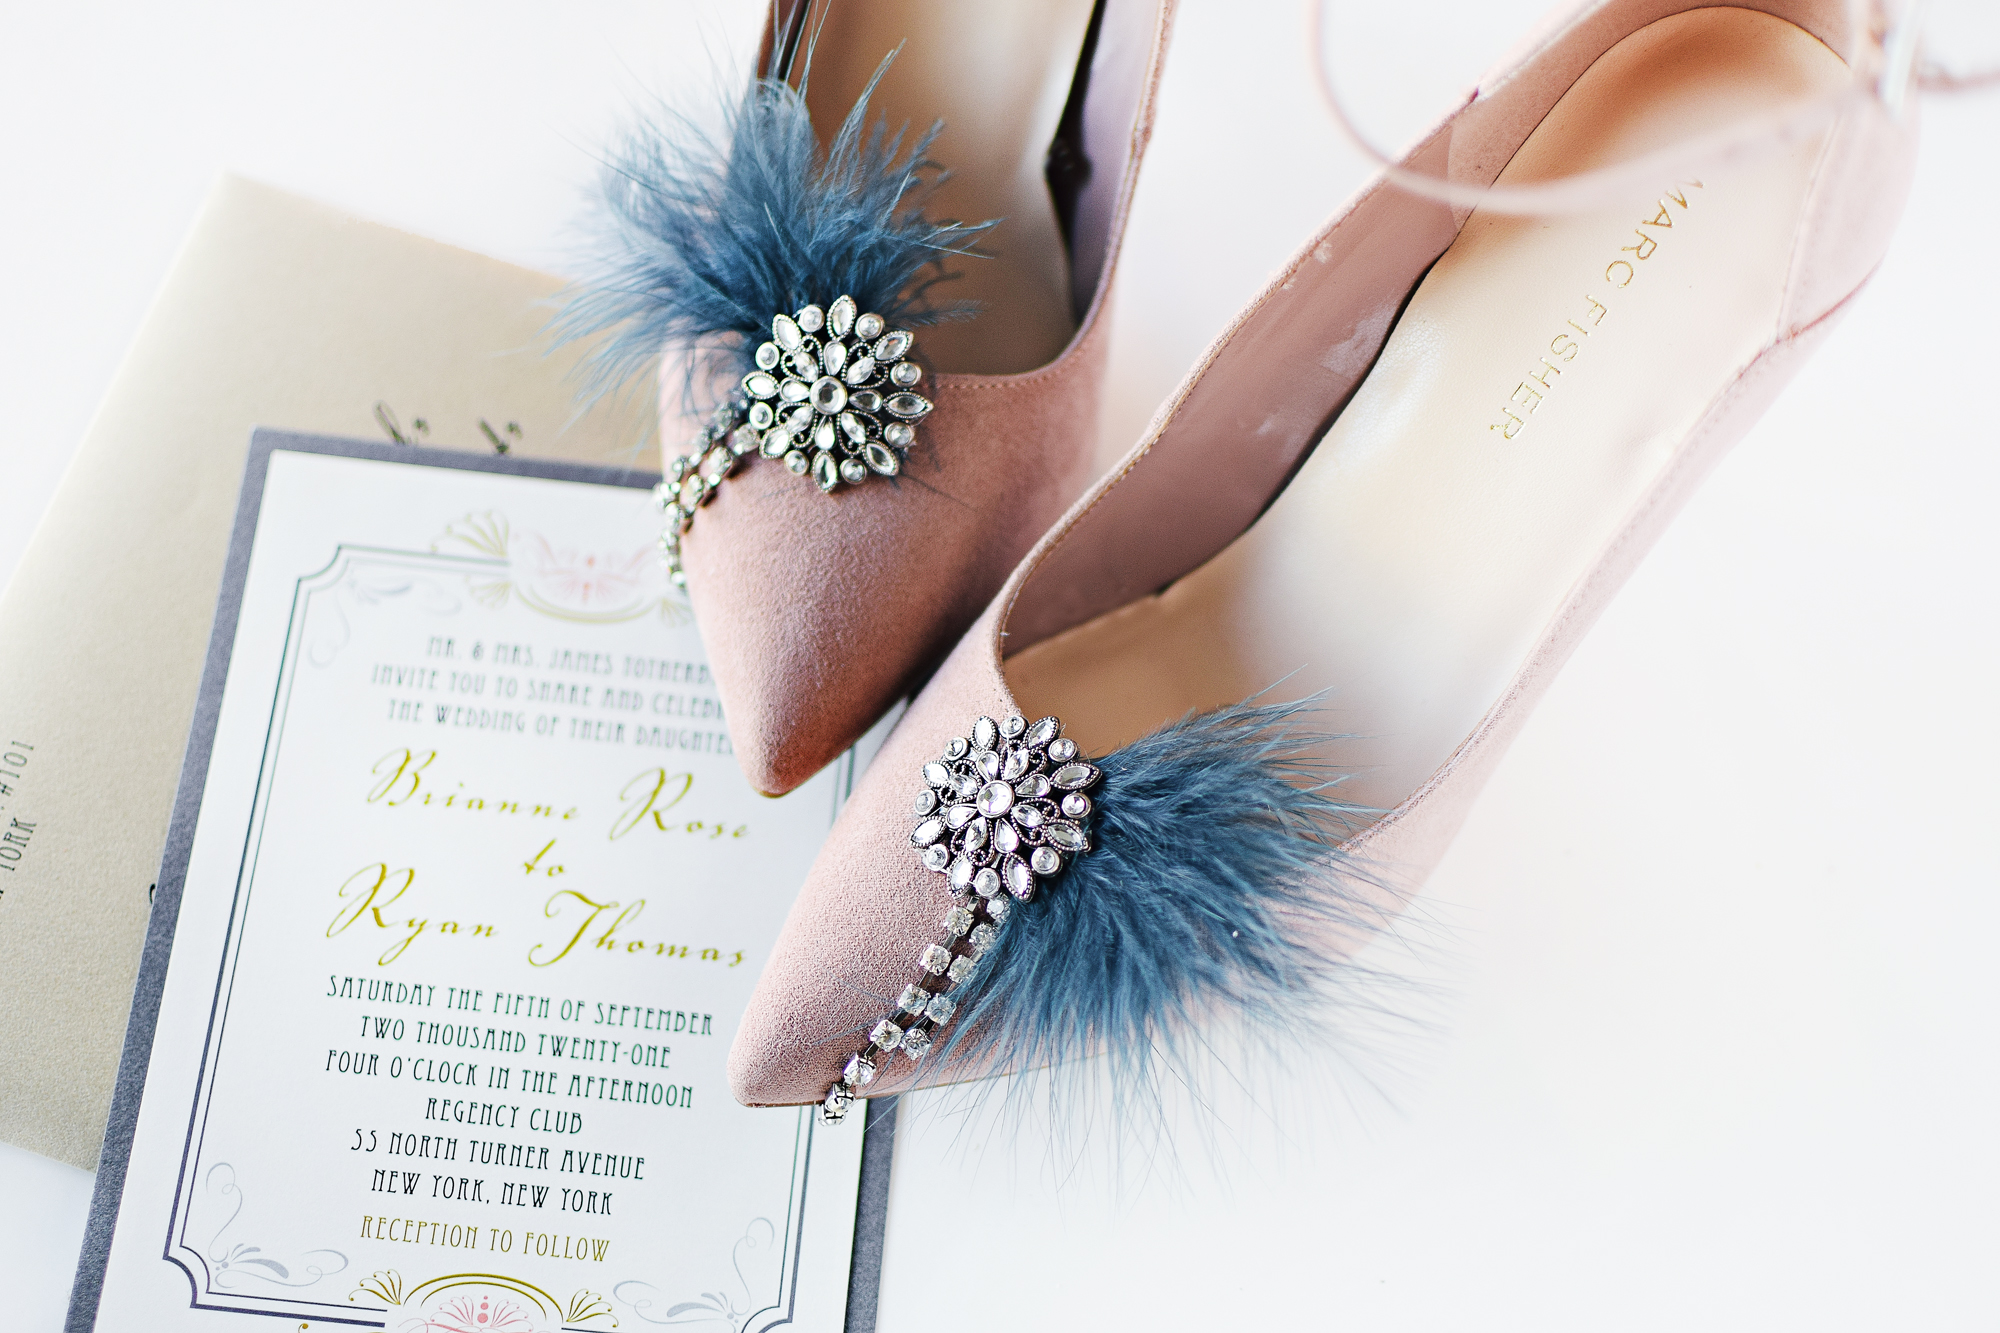 diy vintage inspired shoe clips by Beacon Lane Blog